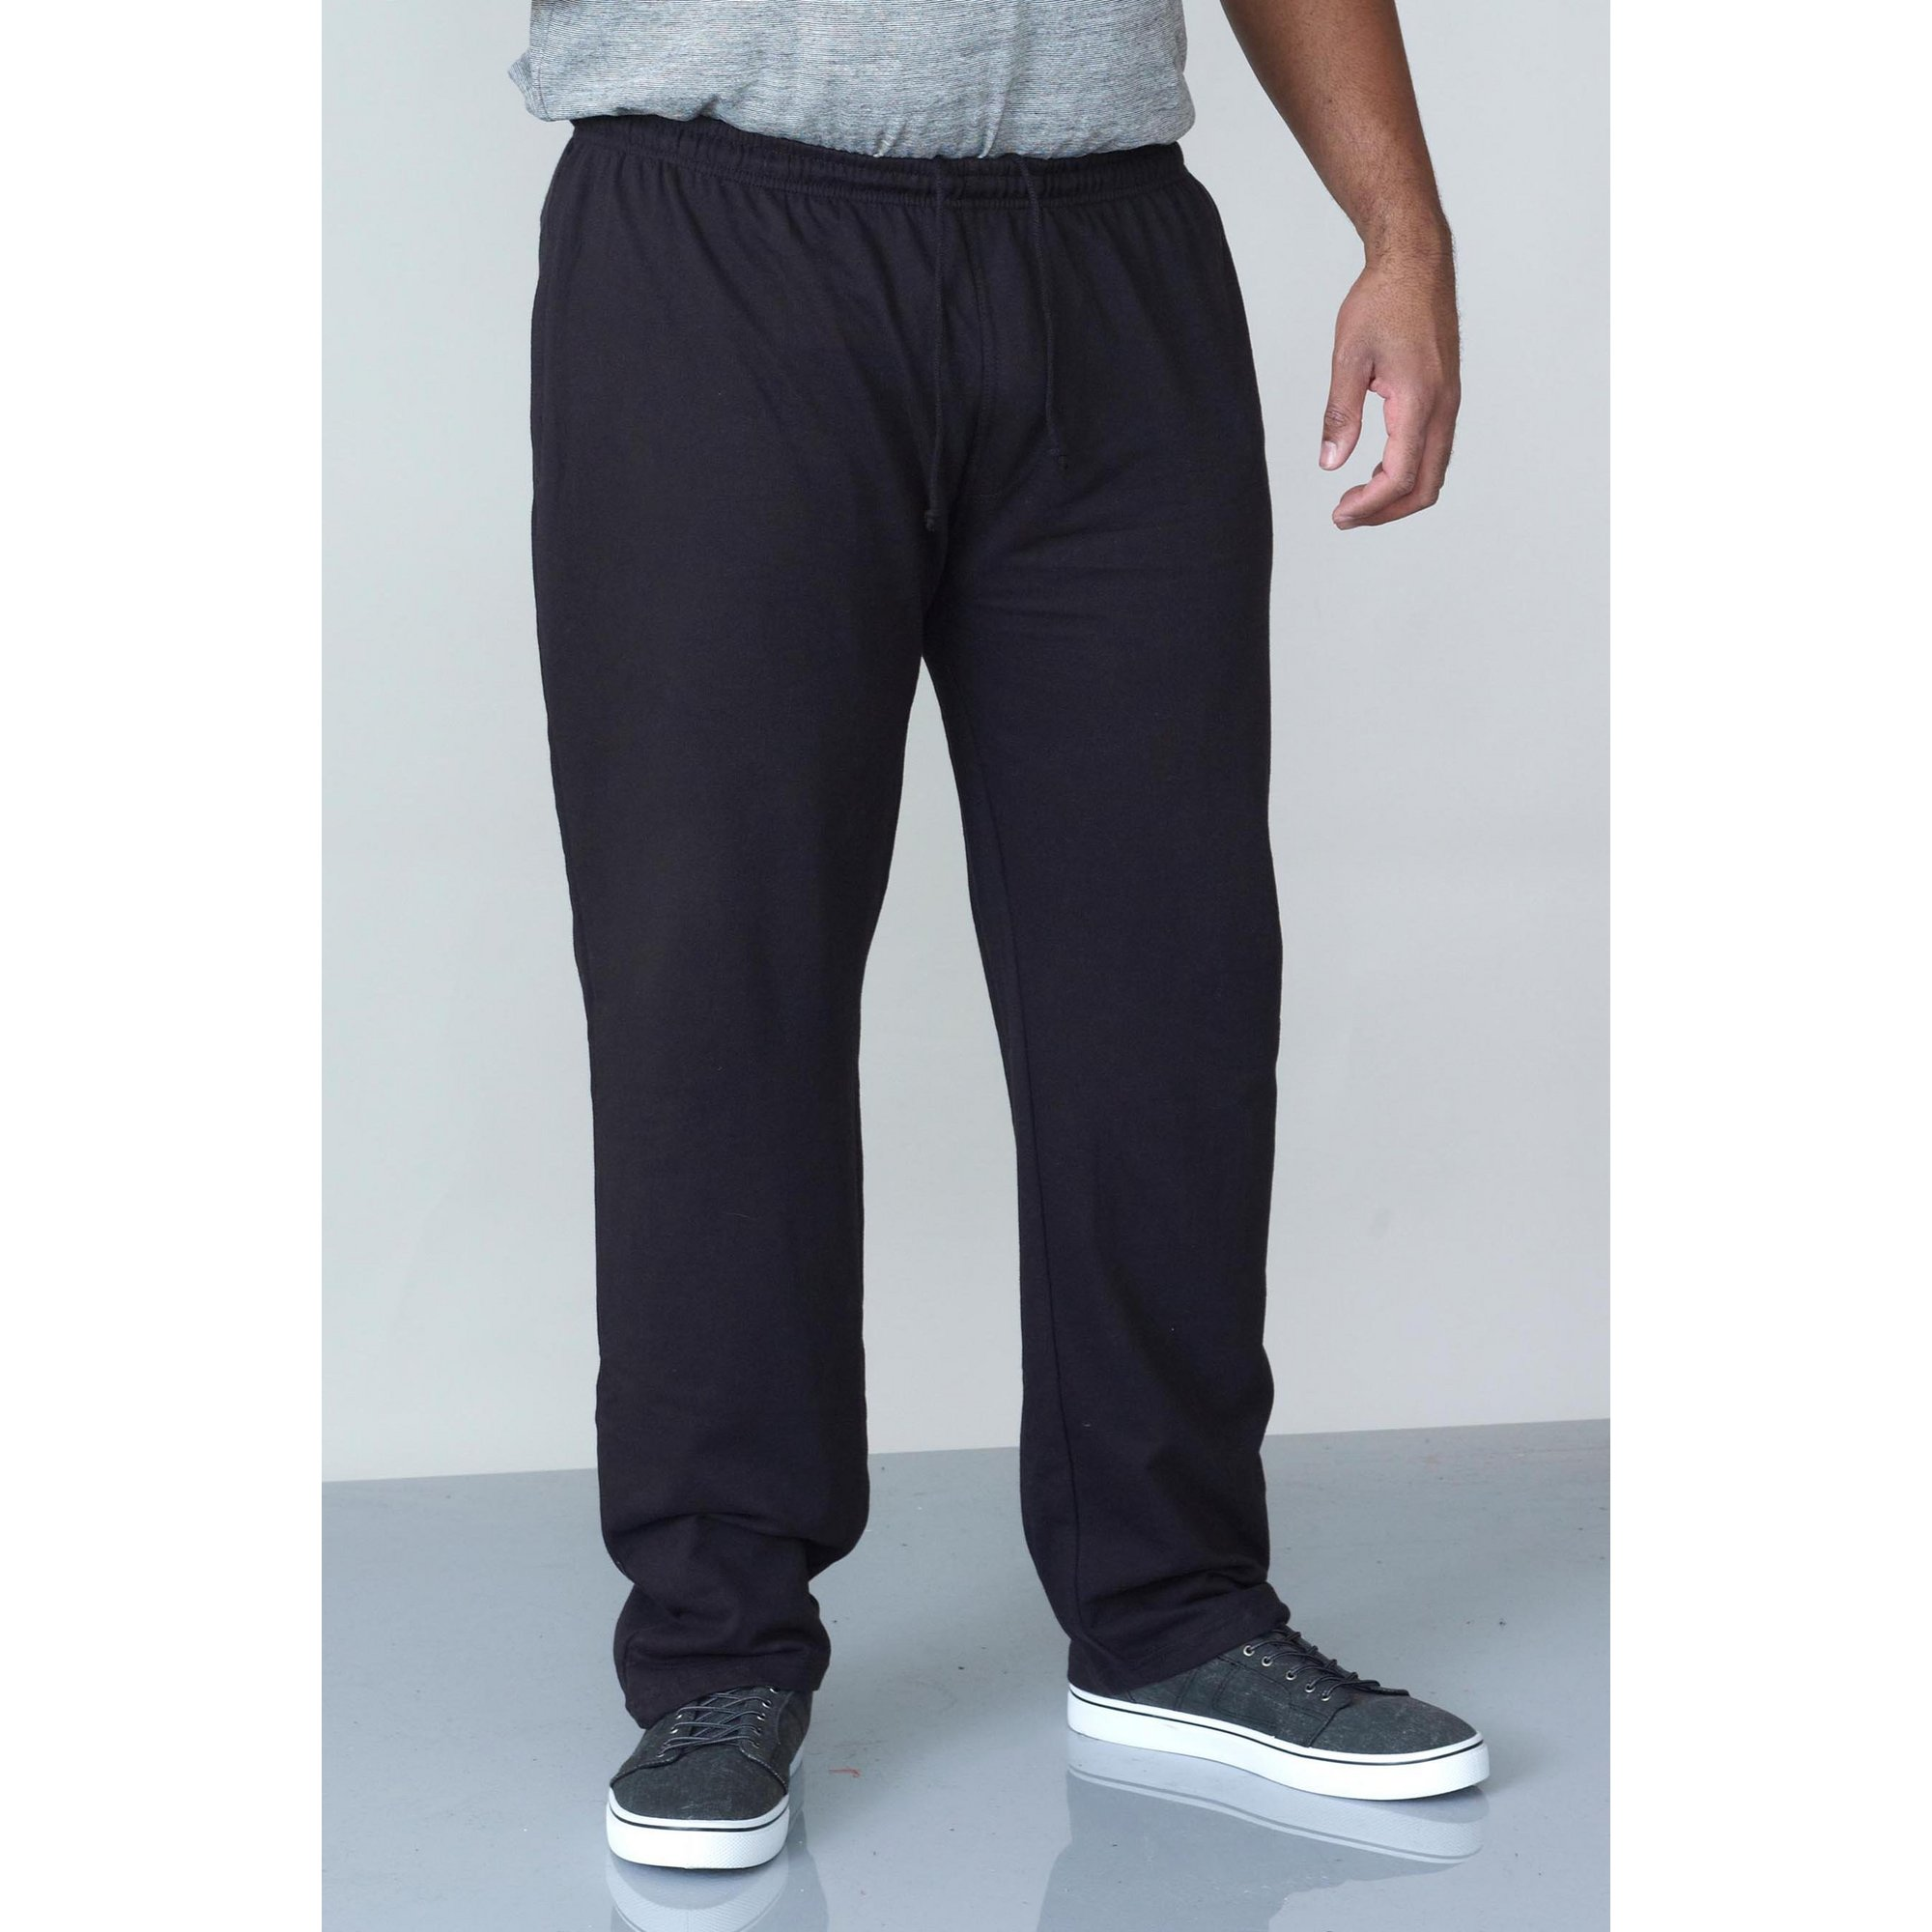 Image of D555 by Duke Big and Tall Lightweight Jogging Bottoms